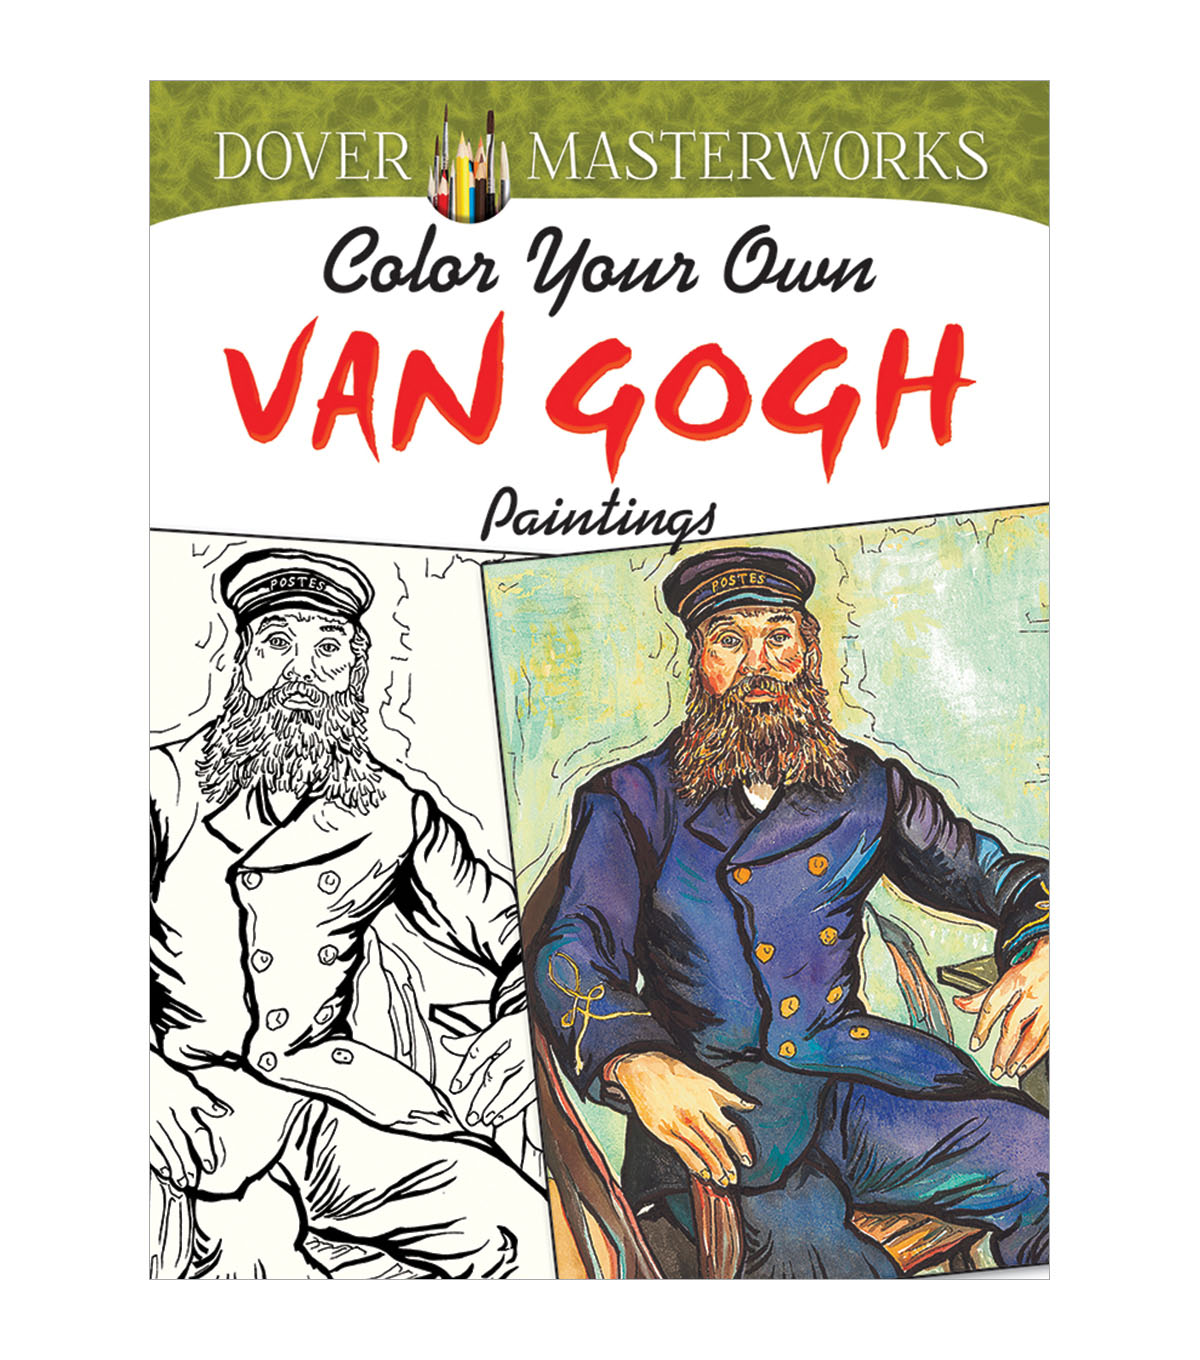 Dover Masterworks Color Your Own Van Gogh Paintings Coloring Book